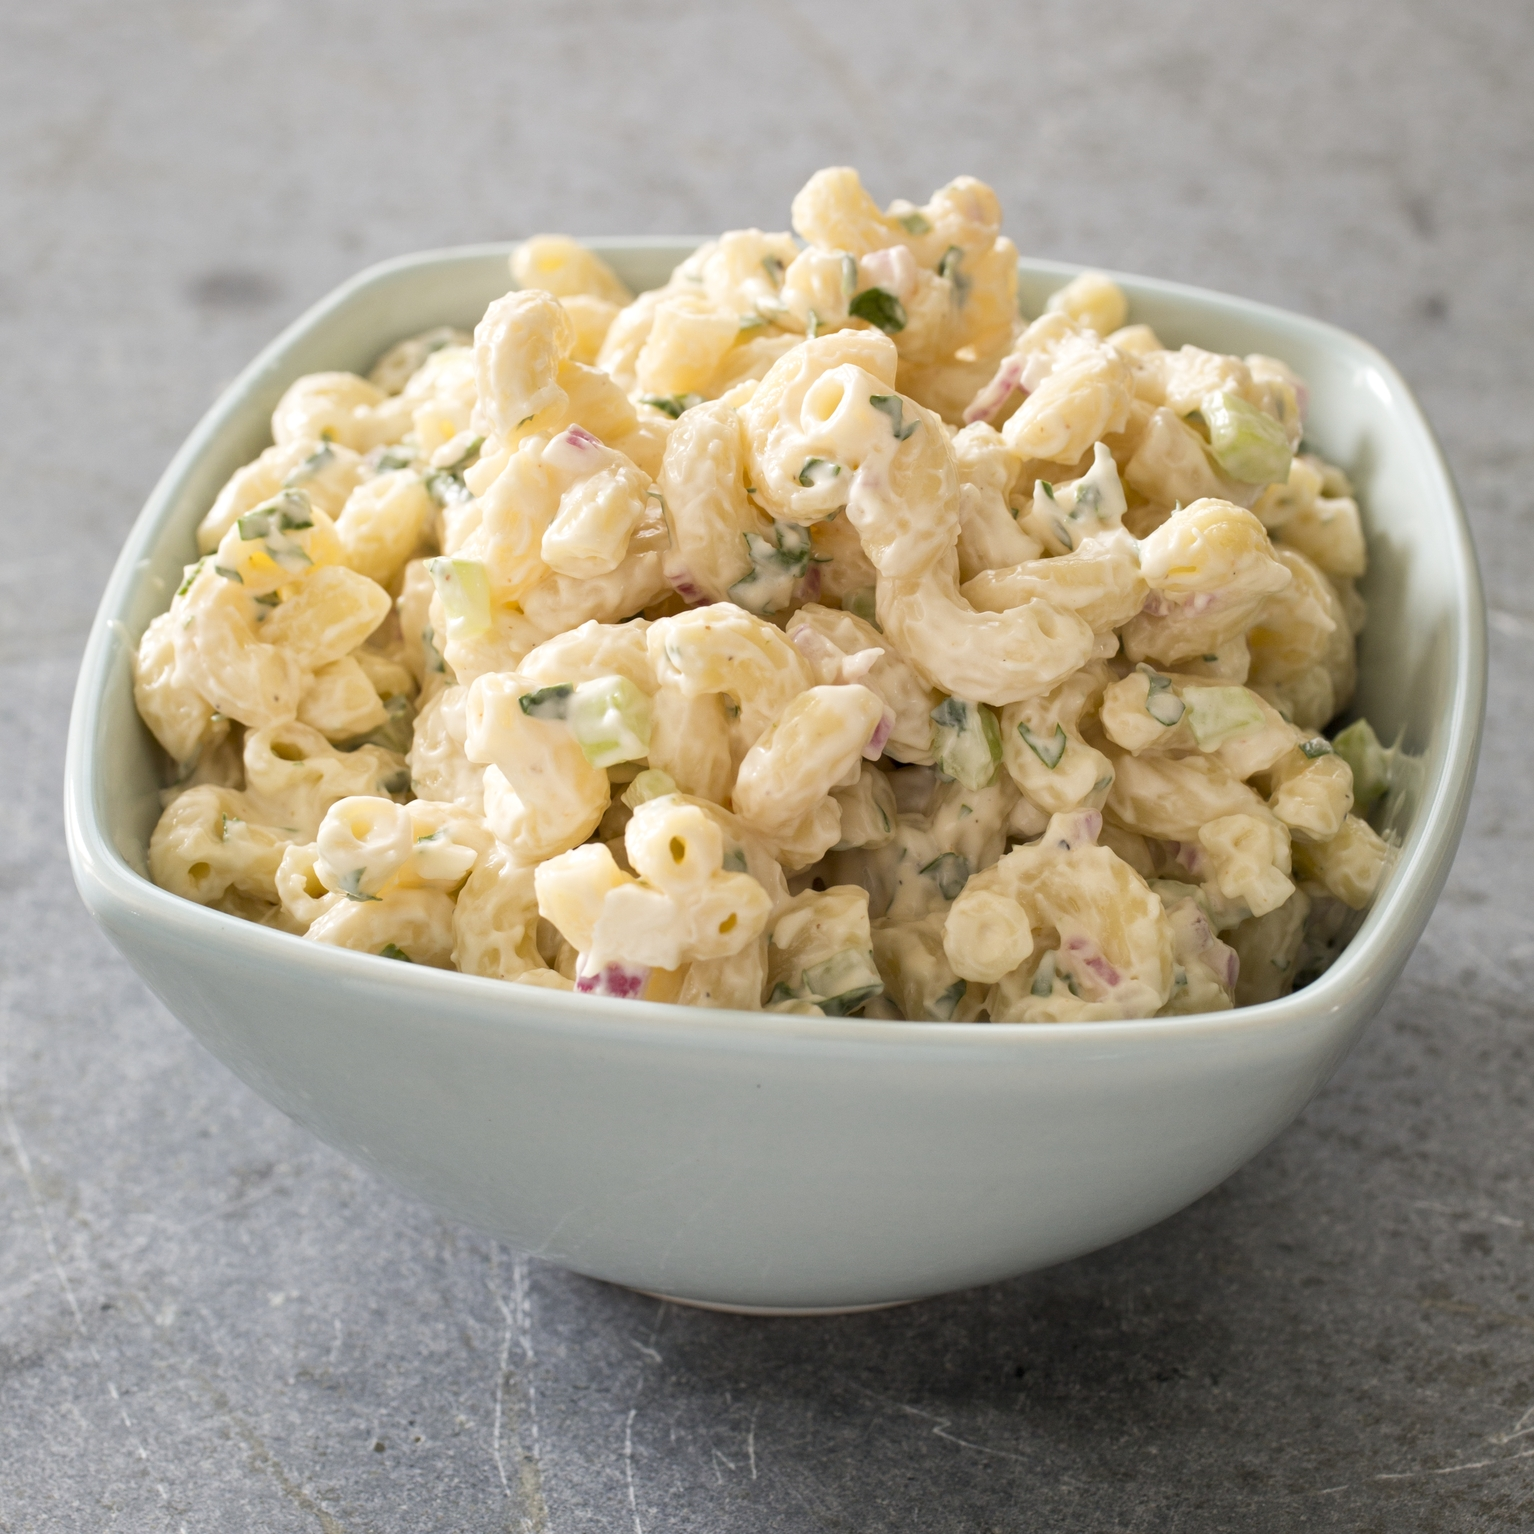 Cool and Creamy Macaroni Salad